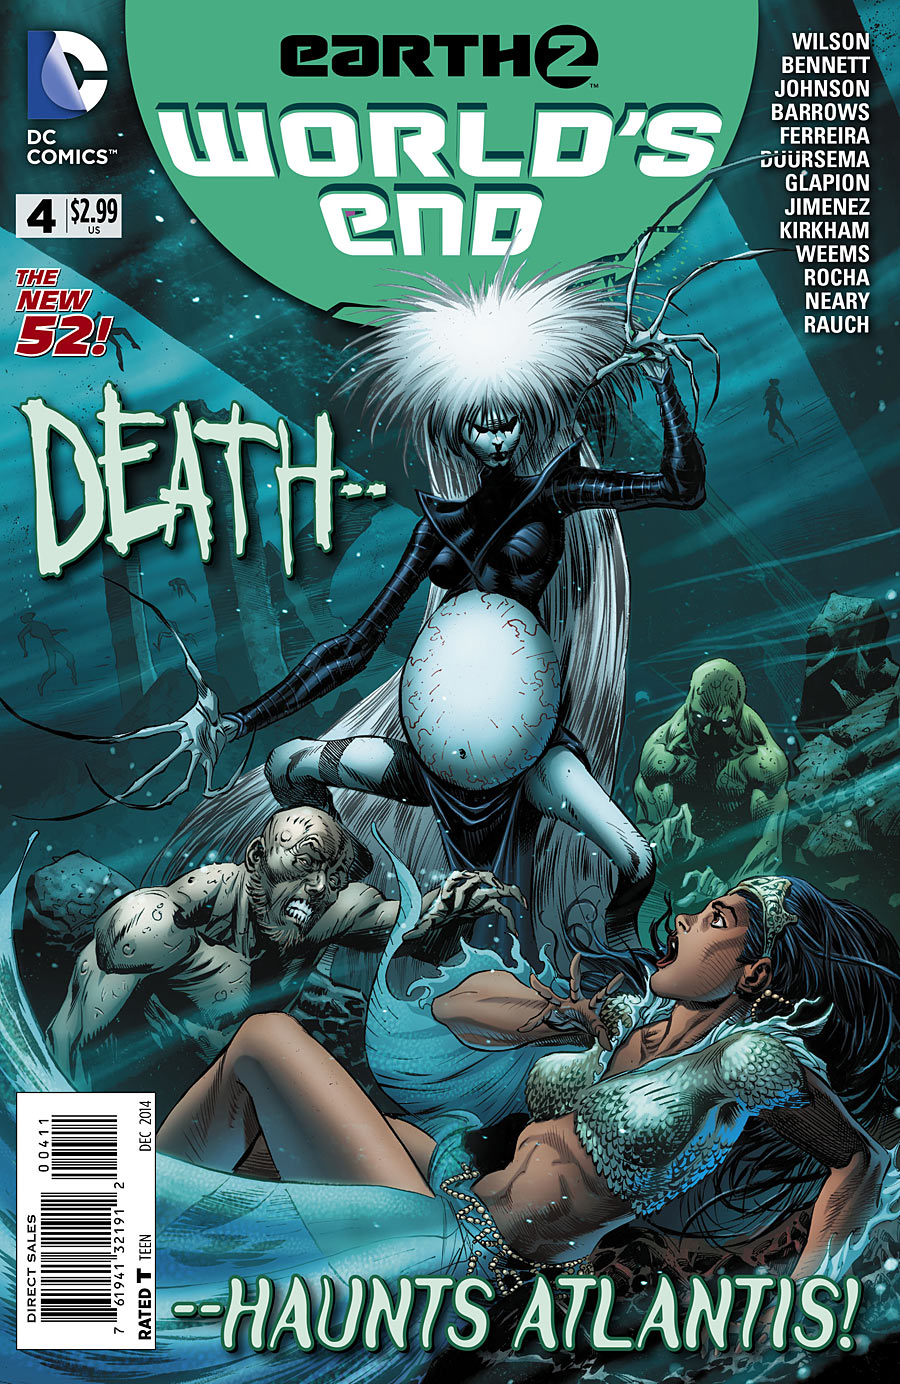 Earth 2: World's End #4